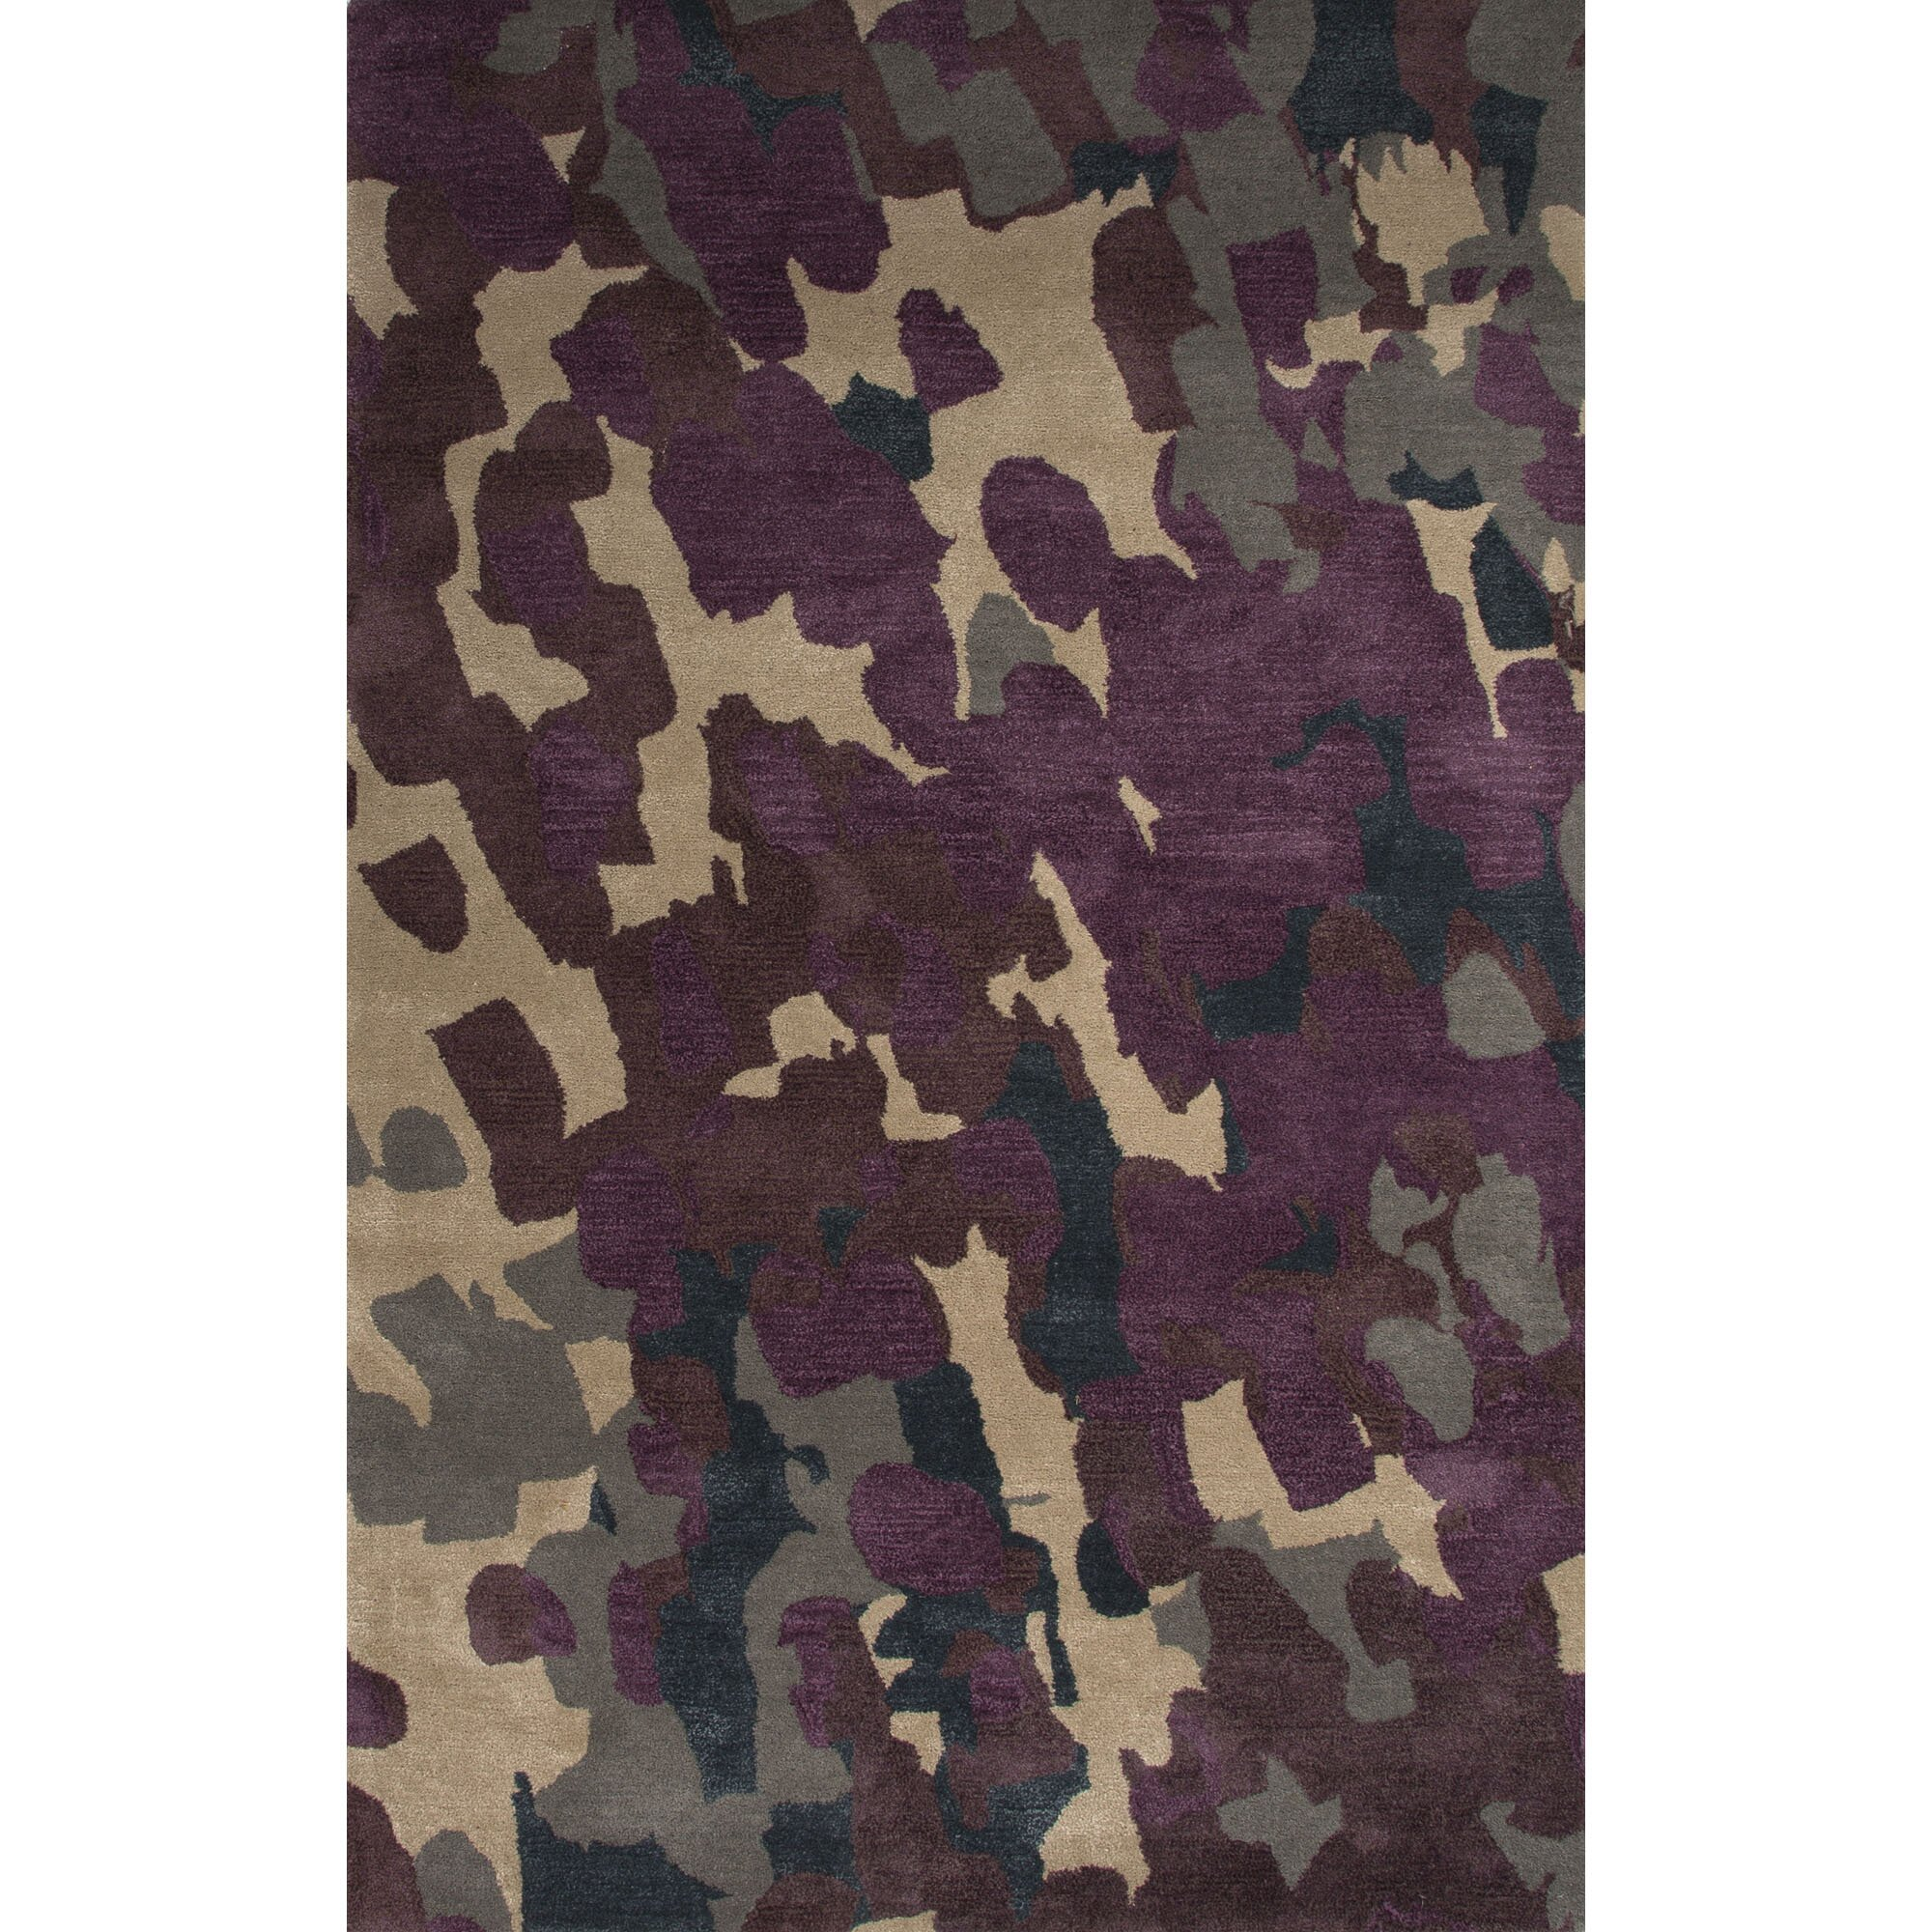 Dog Eating Wool Rug: JaipurLiving Blue Wool And Art Silk Hand Tufted Purple